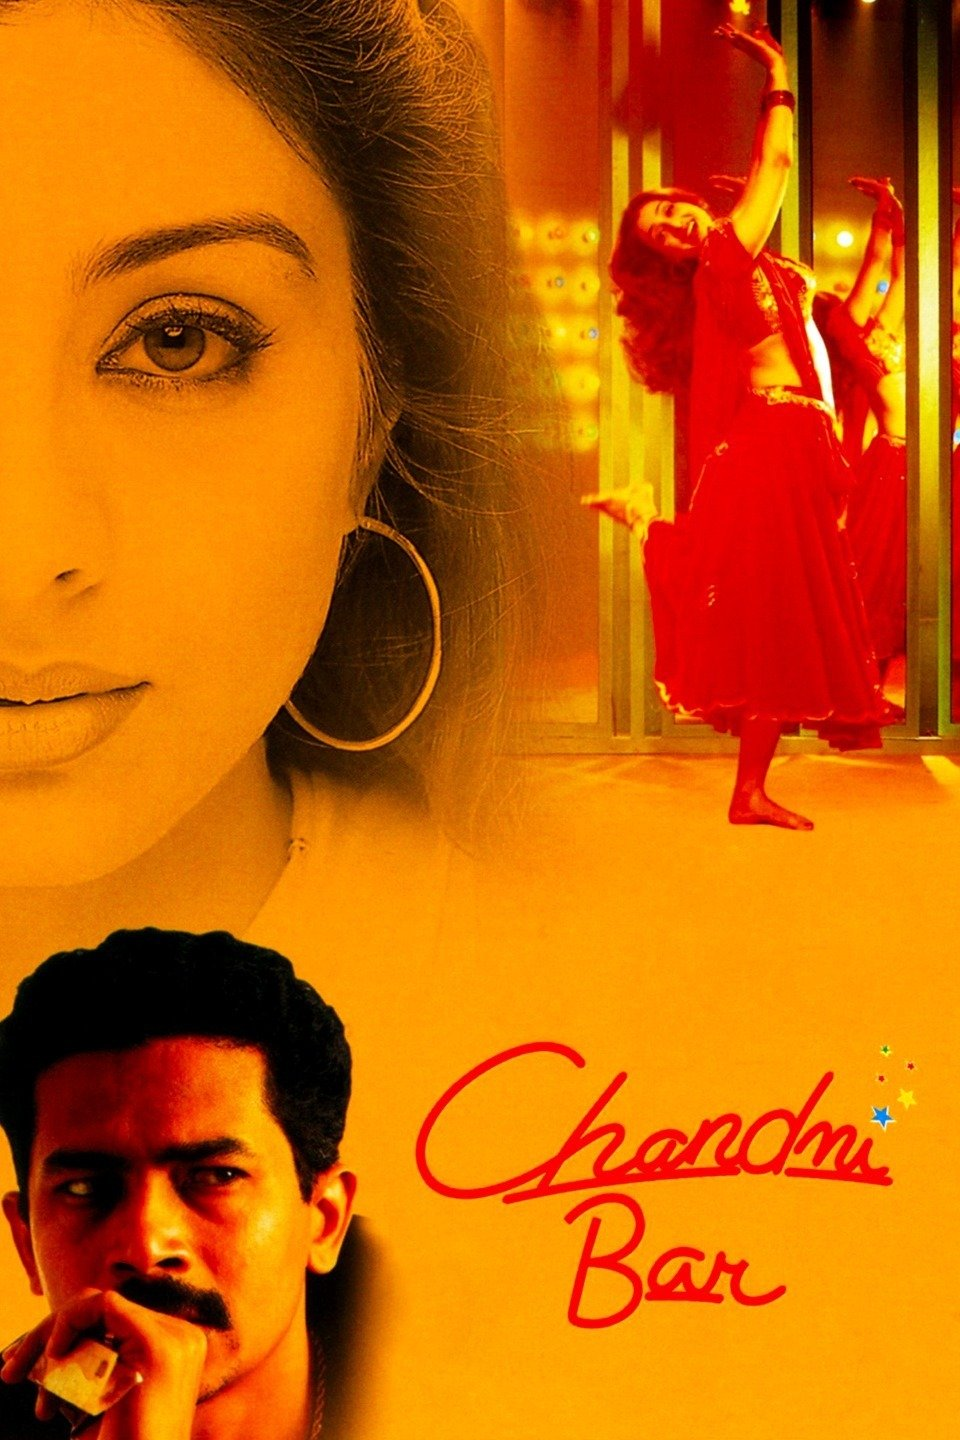 Chandni Bar 2001 Full Movie Download in 720p HD DVDRip